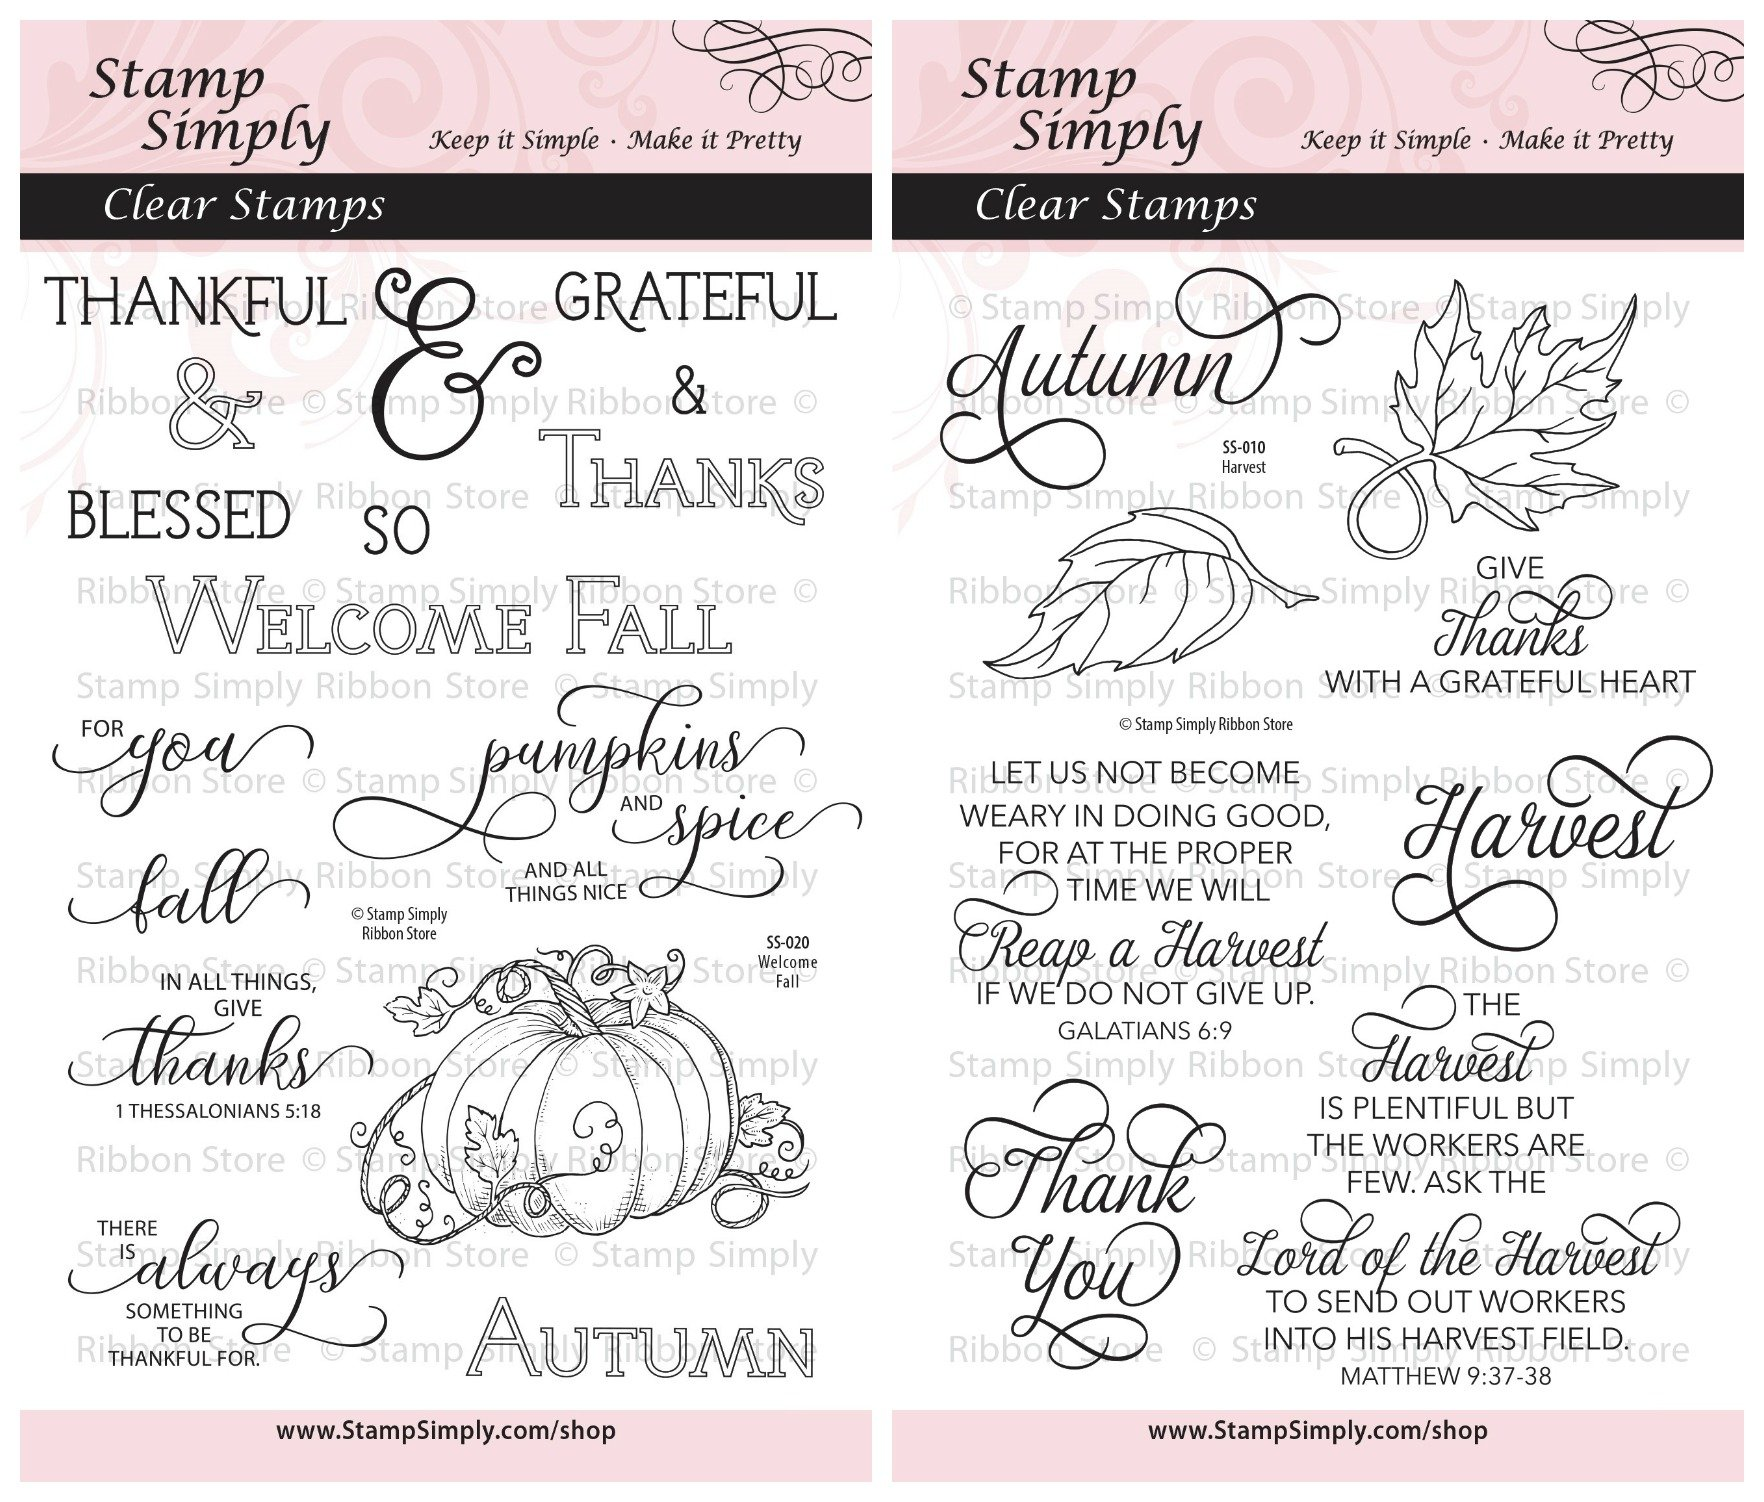 Stamp Simply Clear Stamps Thanksgiving Welcome Fall and Harvest Christian Religious (2-Pack) 4x6 Inch Sheets - 24 Pieces by Stamp Simply Clear Stamps